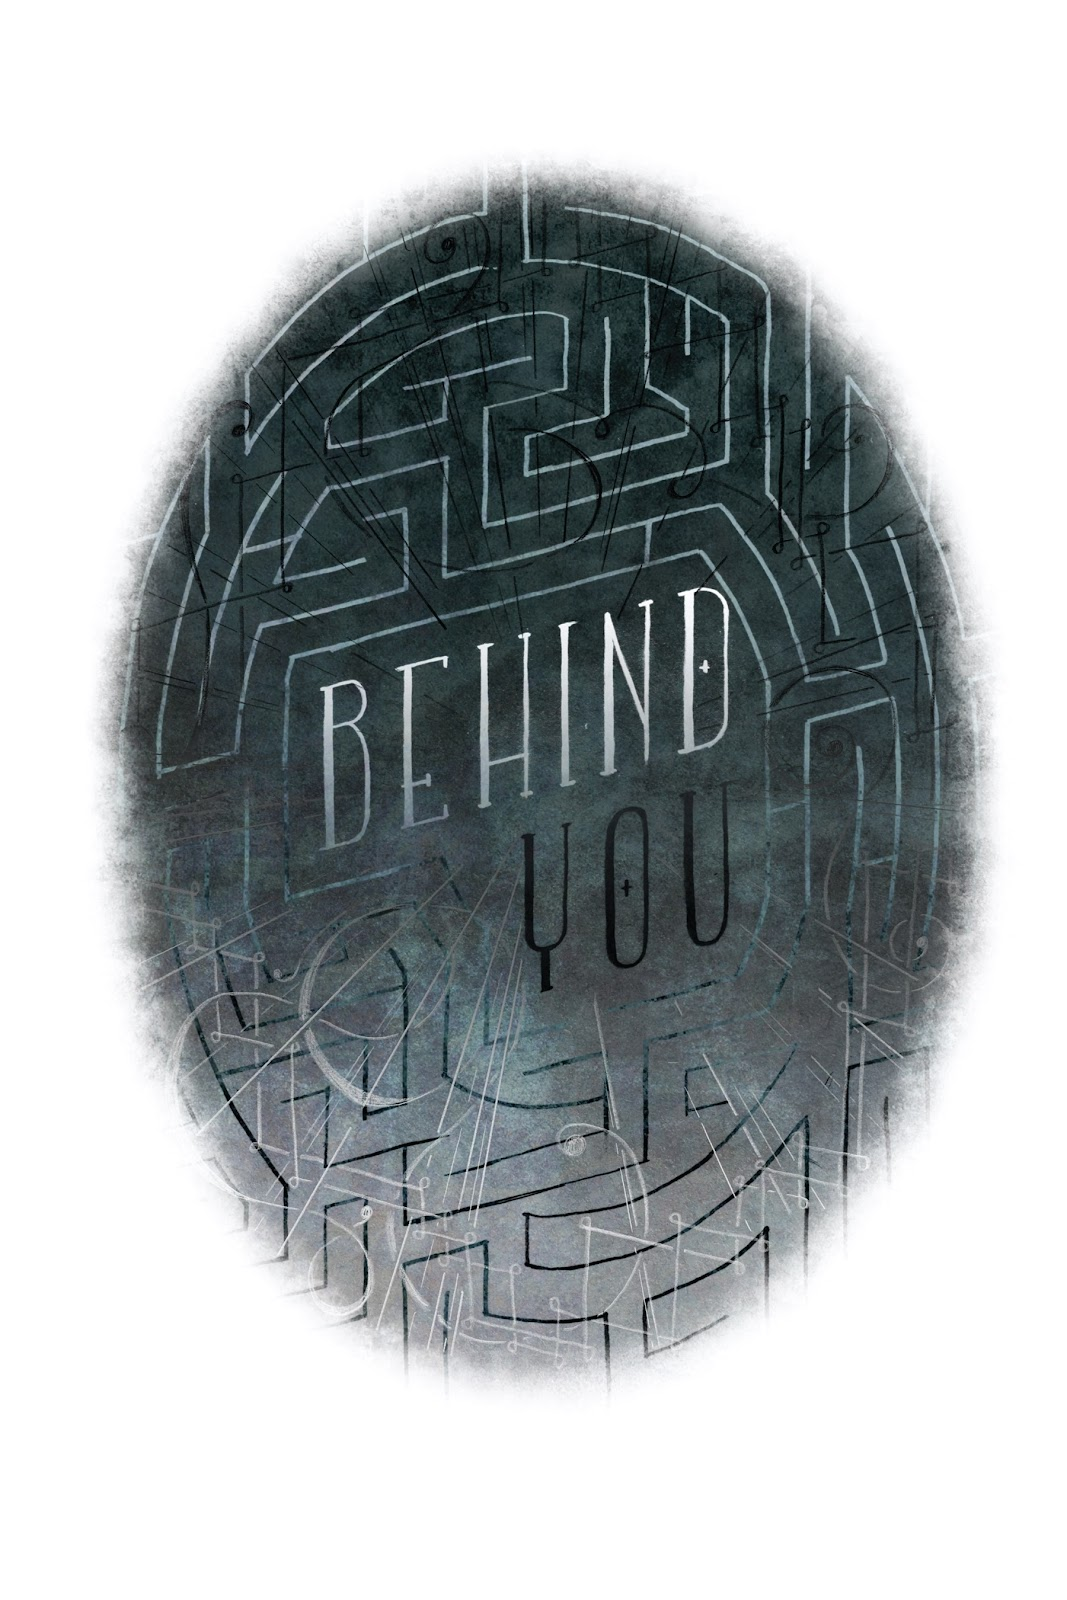 Read online Behind You: One-Shot Horror Stories comic -  Issue # TPB (Part 1) - 4